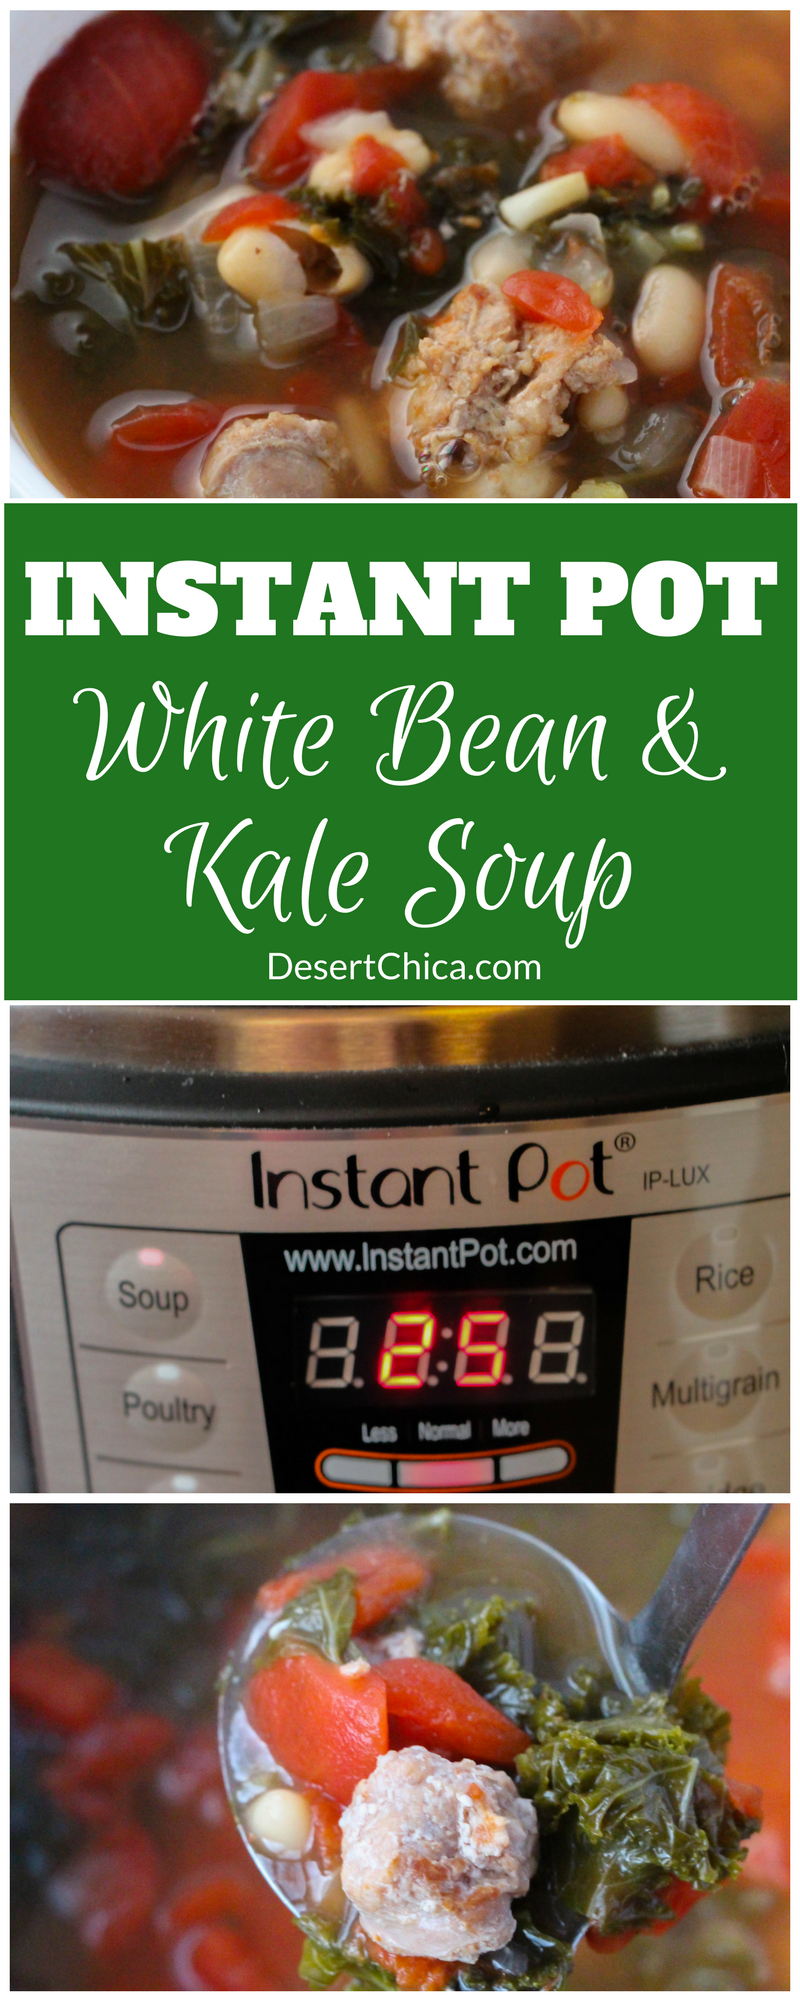 This instant pot white bean and kale soup recipe is scrumptious and fresh tasting with a healthy dose of veggies and some sausage to keep it savory